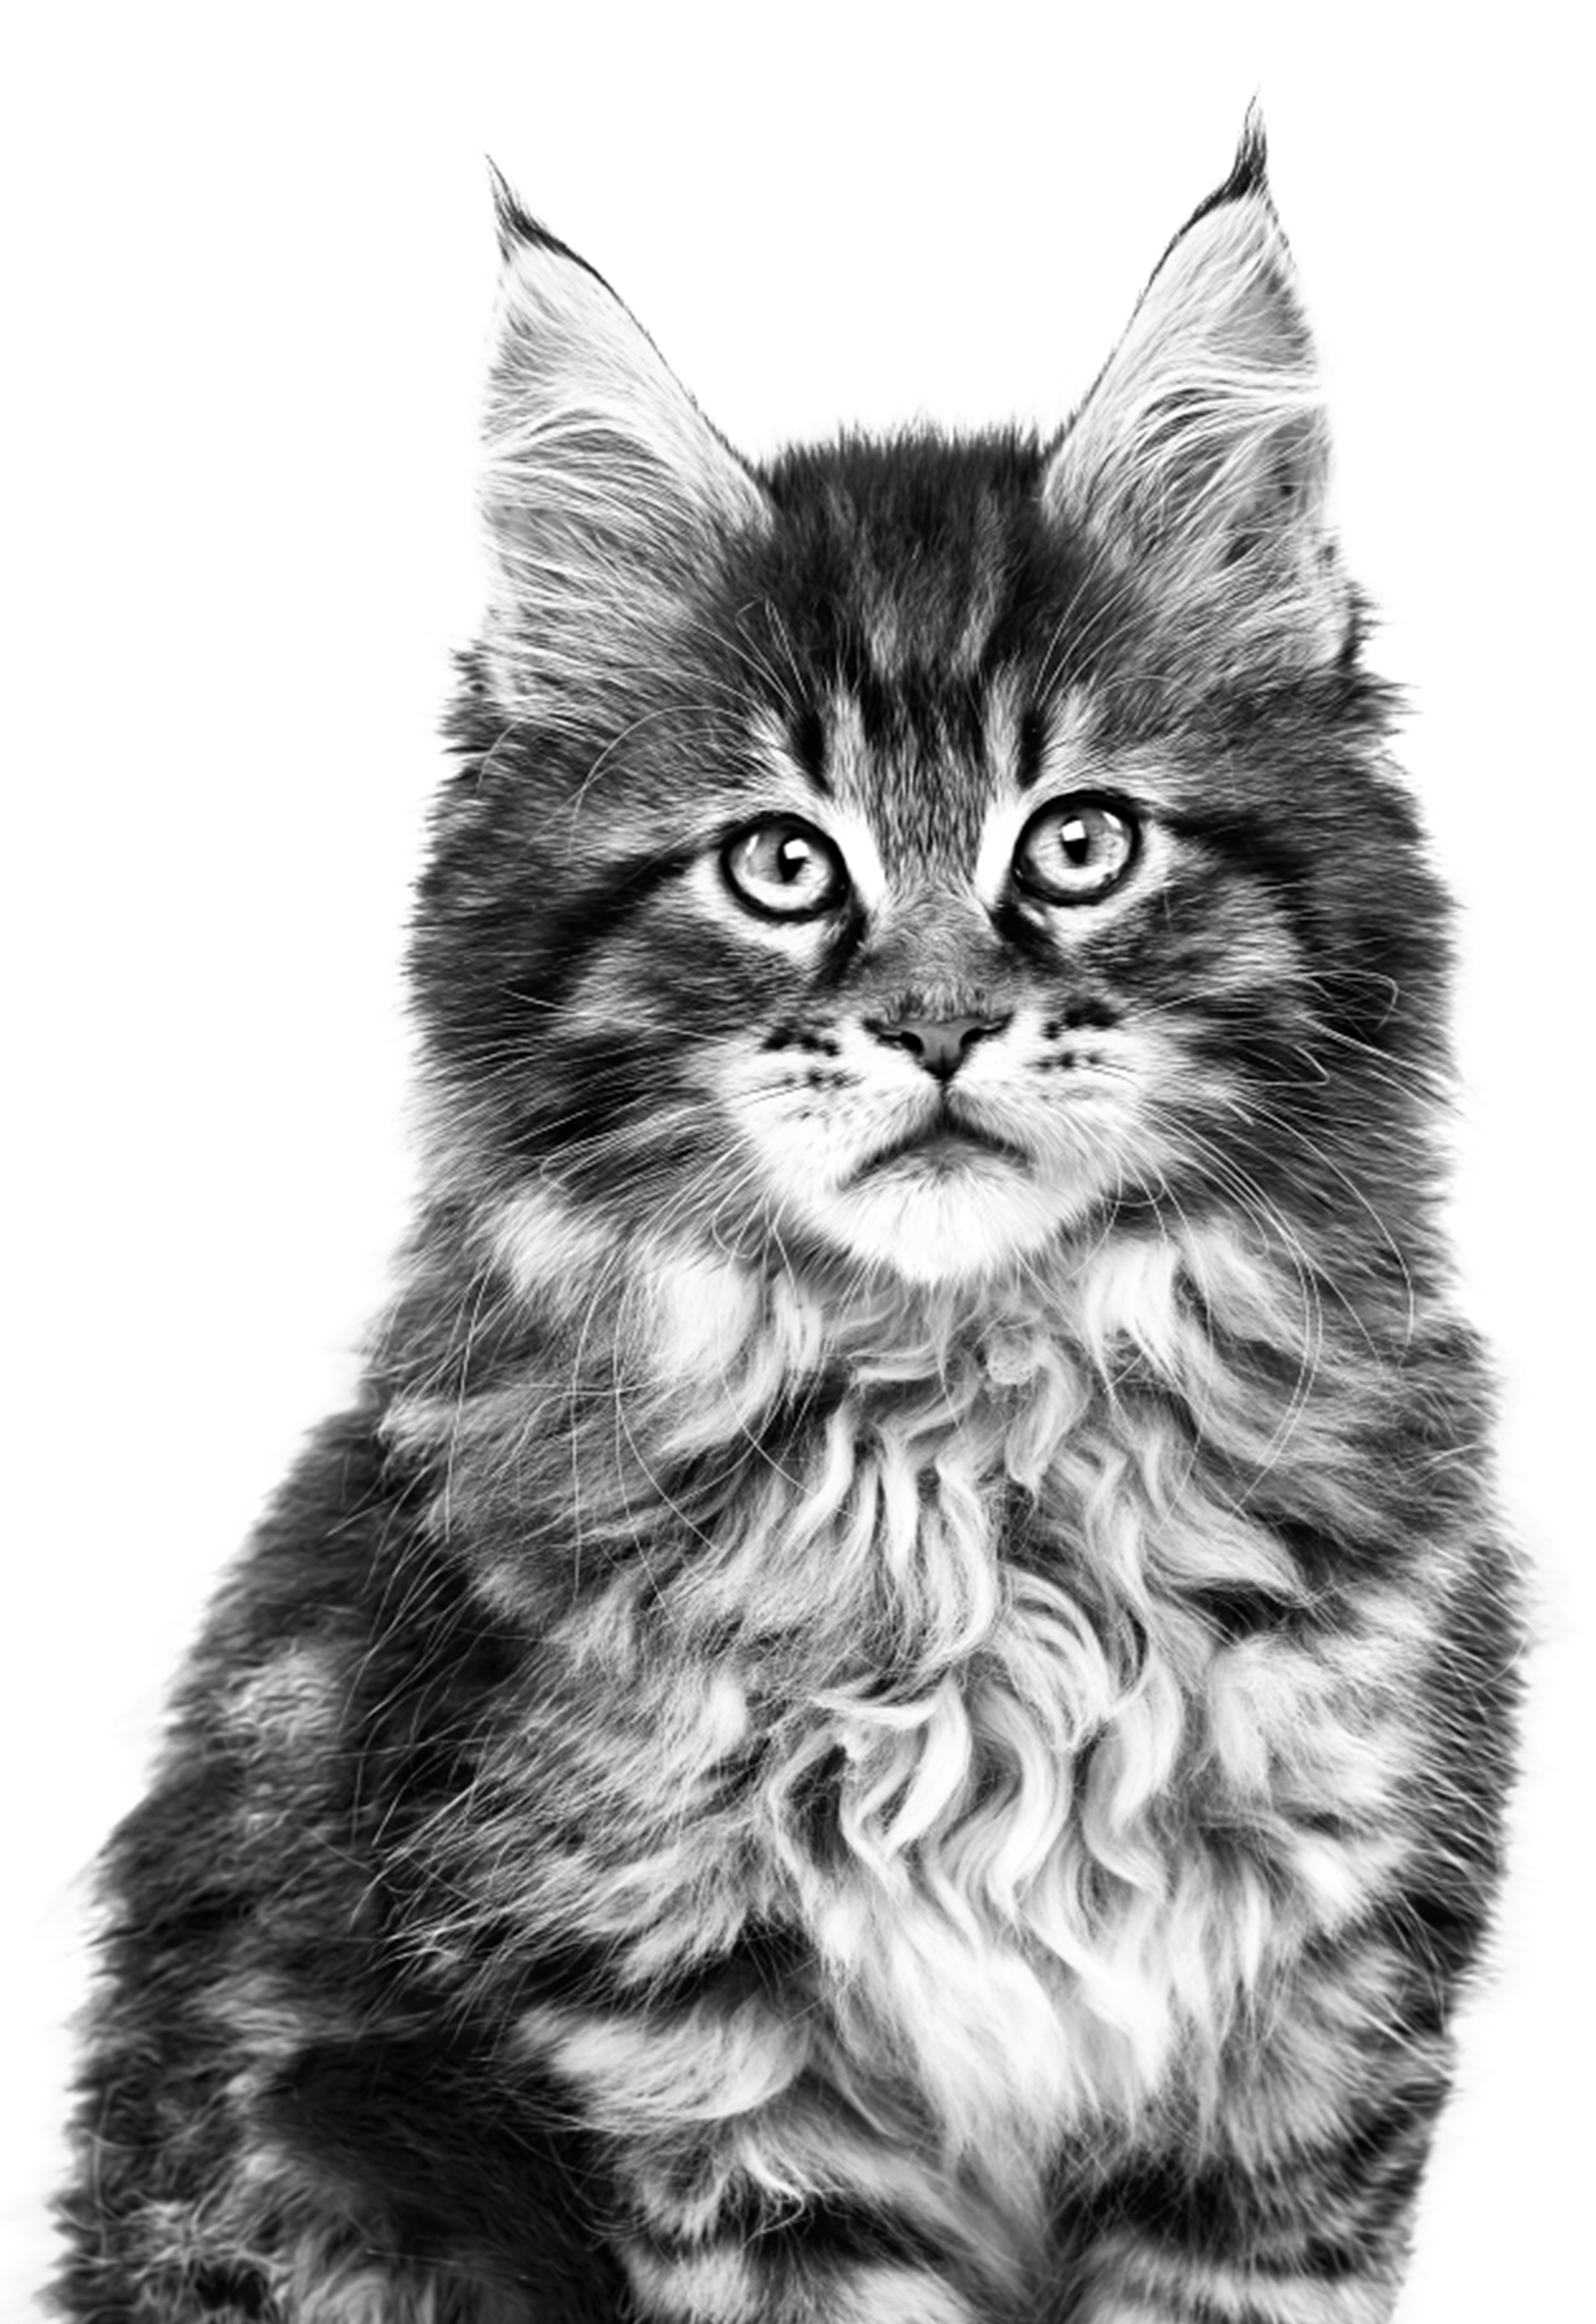 Maine Coon kitten in black and white on a white background